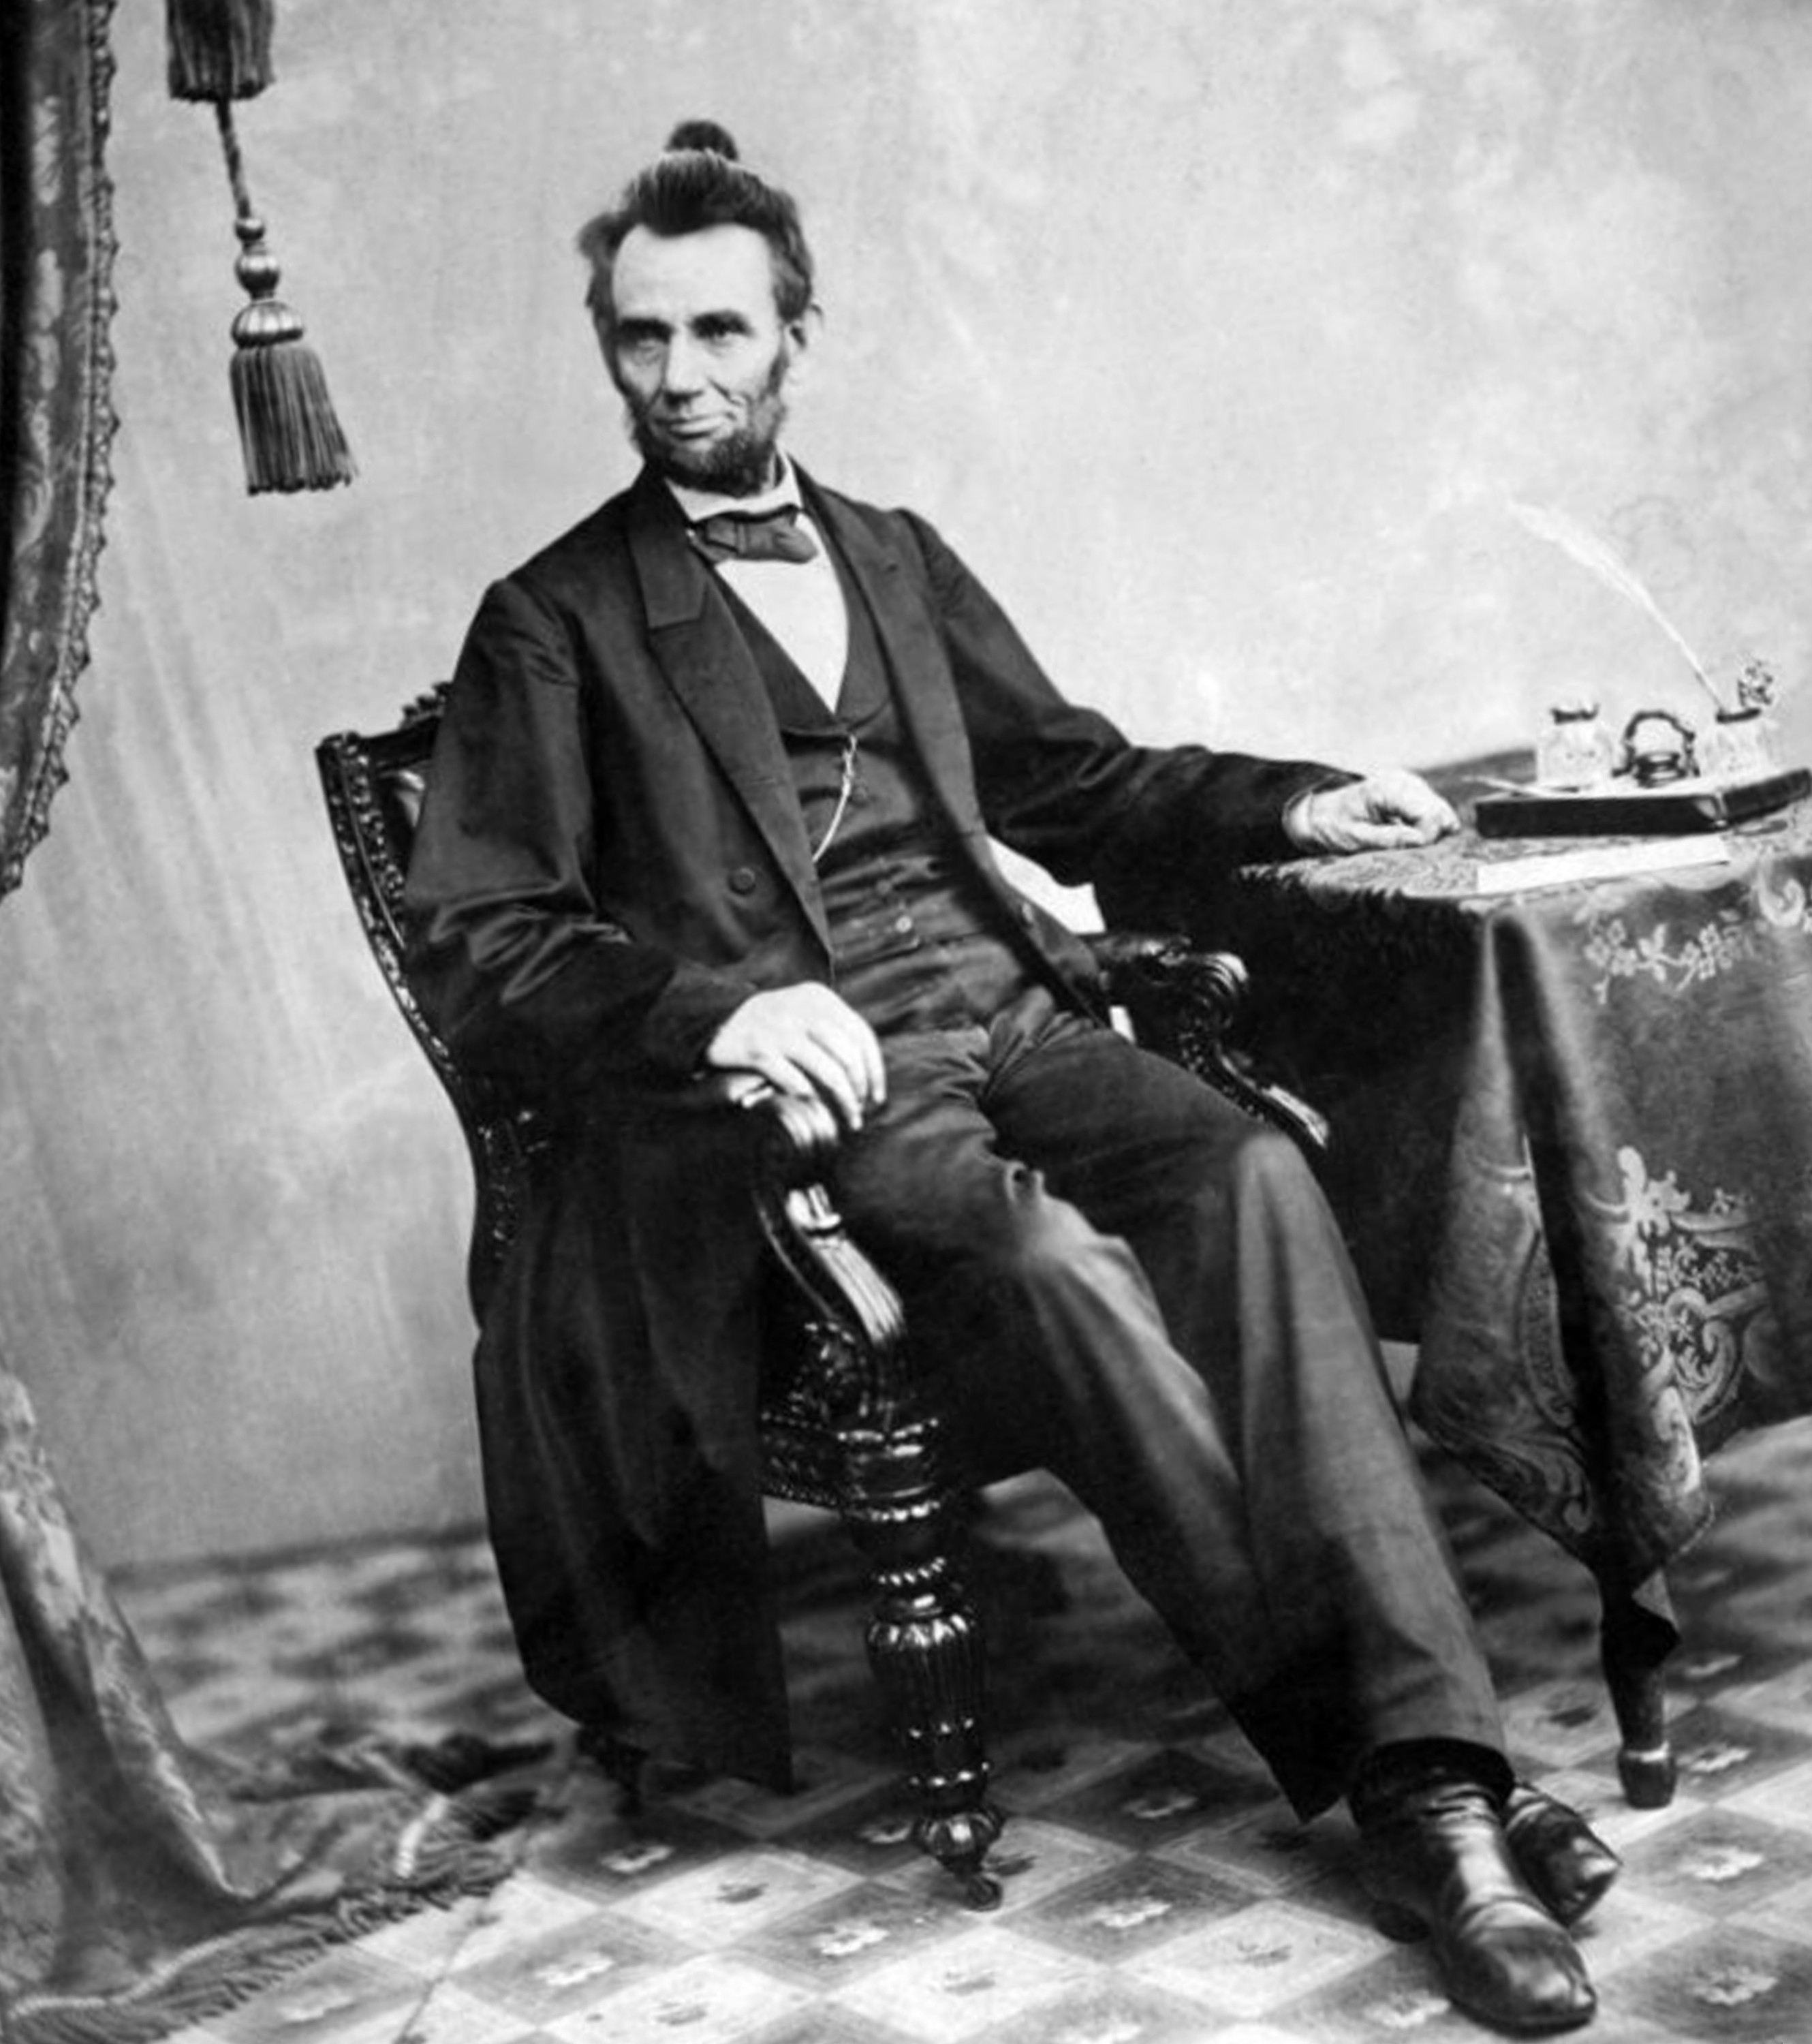 Abraham Lincoln with elegant male bun style.